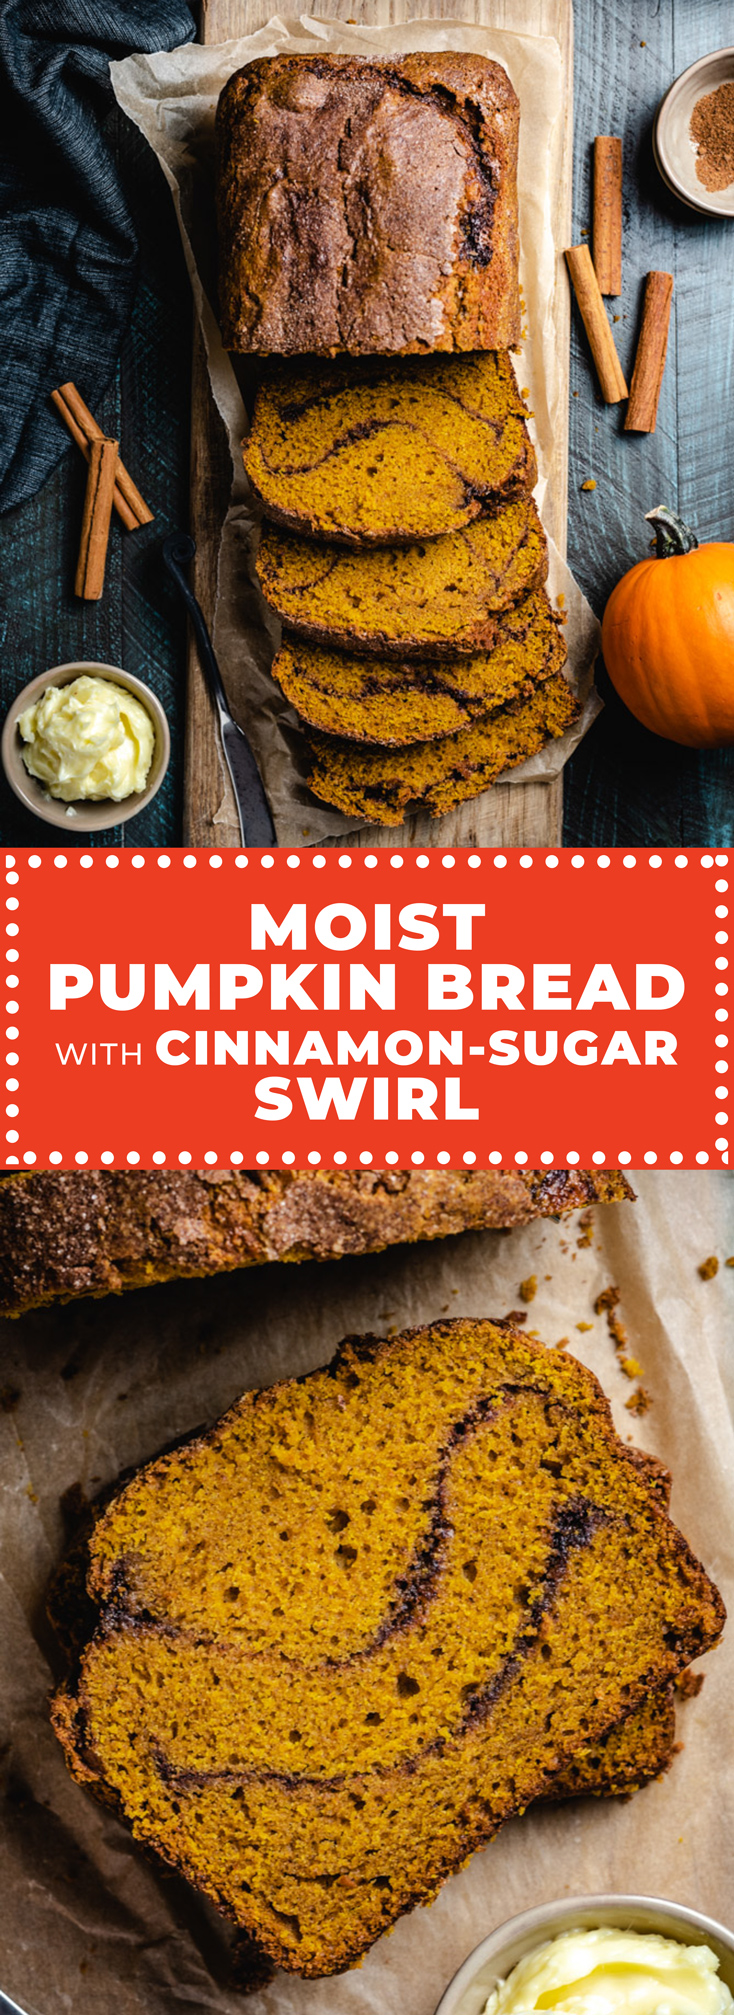 This easy recipe produces a moist, fluffy, and flavorful pumpkin bread with ribbons of cinnamon sugar inside and a crisp, craggly cinnamon crust.  | hostthetoast.com